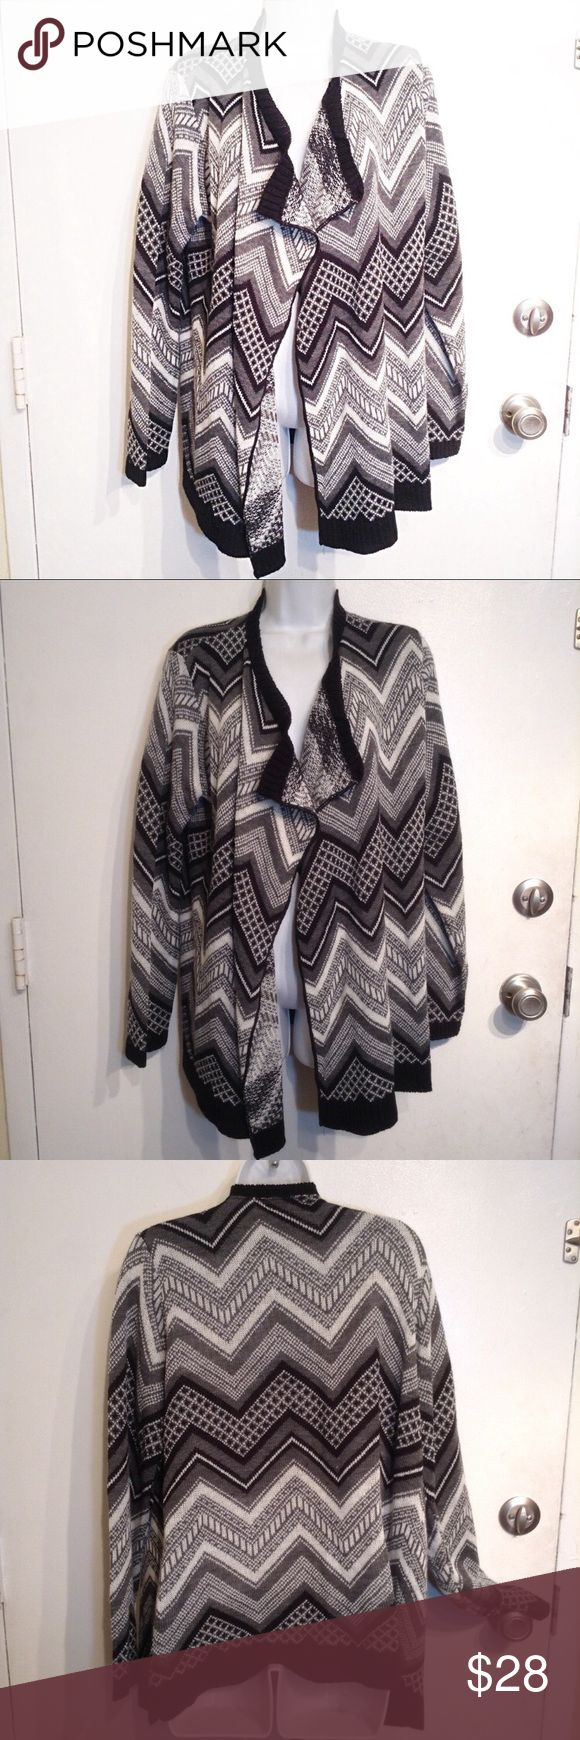 "PLUS SIZE Chevron Open Front Knit Cardigan Sweater Brittany Black Woman plus size neutral black white and grey chevron print open front cardigan sweater. Cozy knit. Flowy flattering front. Size 2x. Measures approx 24"" flat from armpit to armpit and Just under 29"" long. No modeling. Smoke free home, I do discount bundles. Brittany Black Sweaters Cardigans"